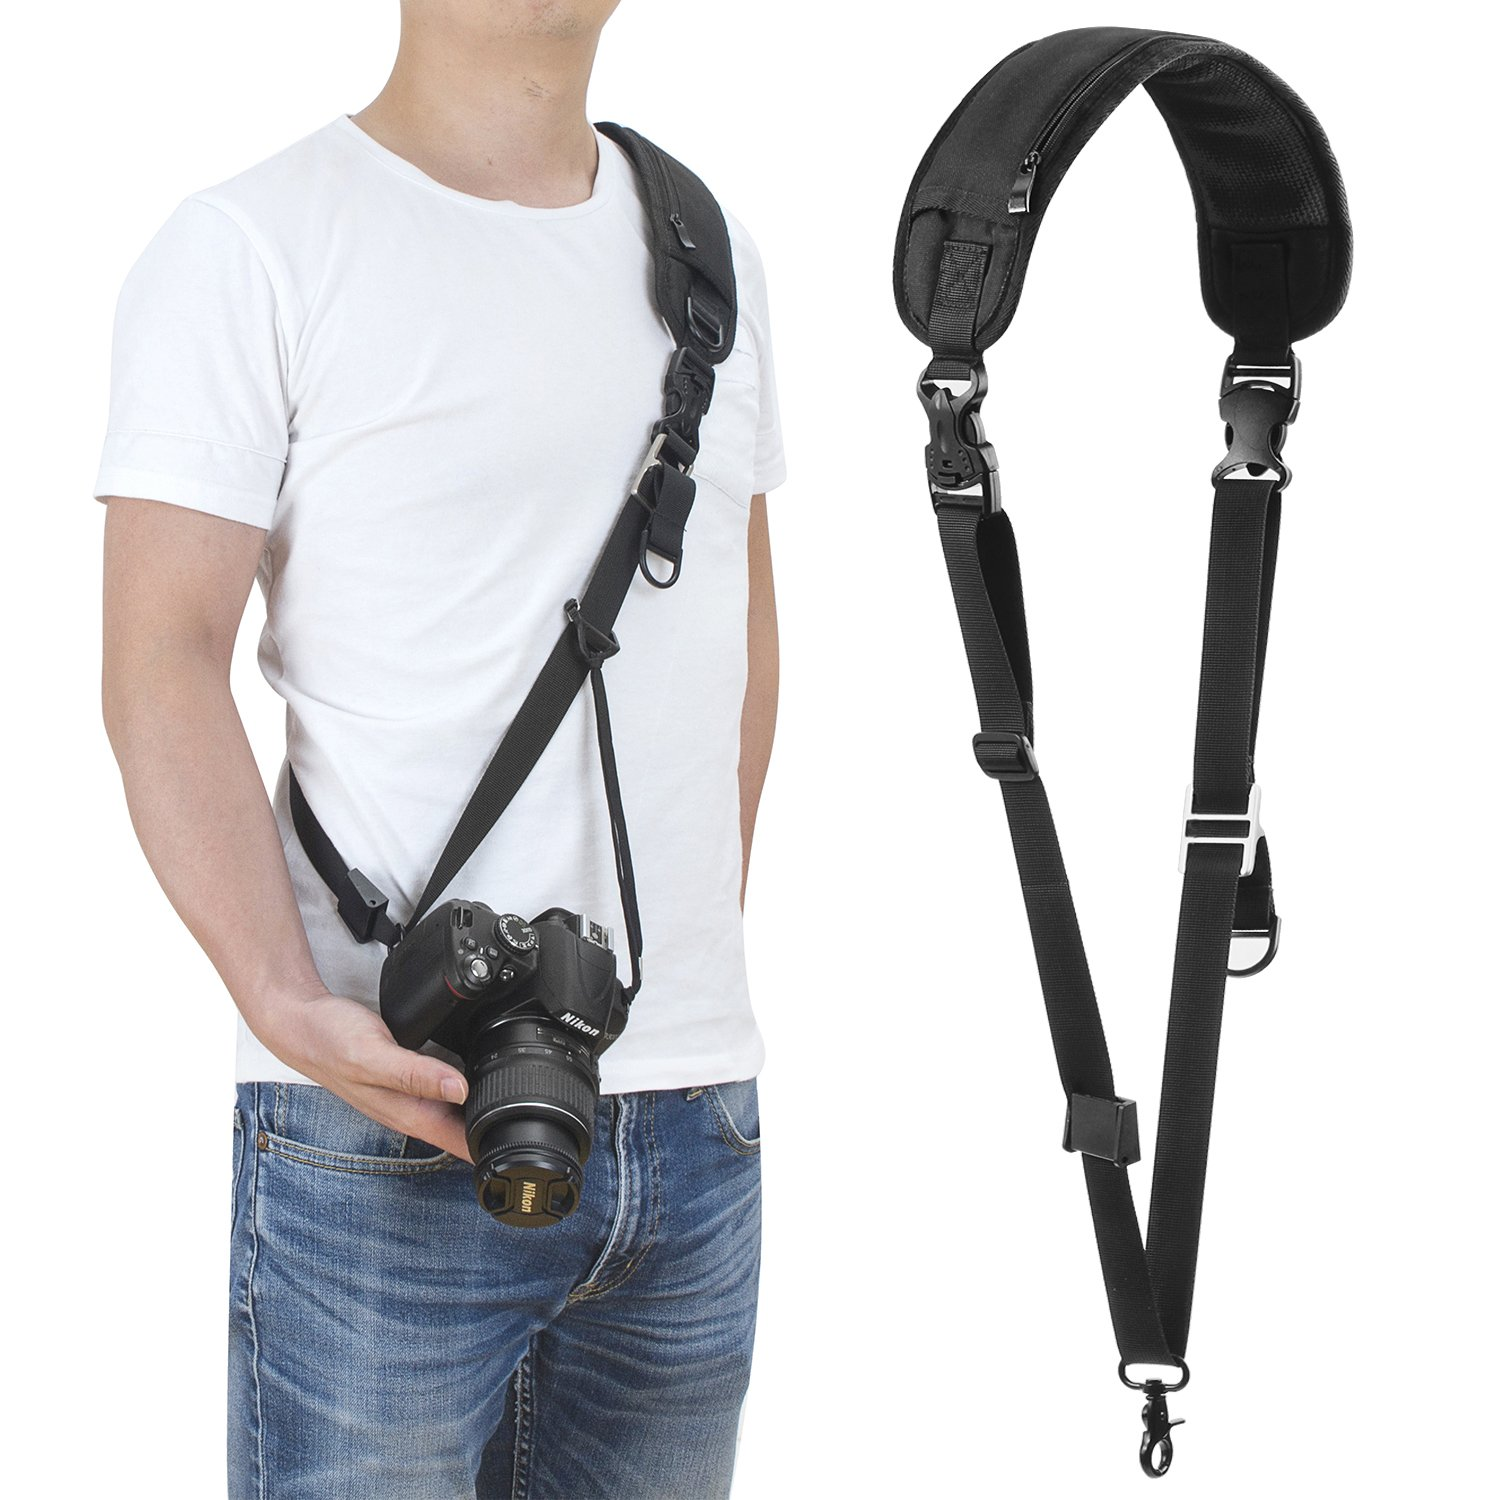 waka Camera Strap, DSLR Camera Neck Shoulder Strap, Soft Neoprene Camera Sling Strap with Quick Release and Safety Tether for Canon, Fujifilm, Nikon, Panasonic, Sony and More DSLR (Black) by waka